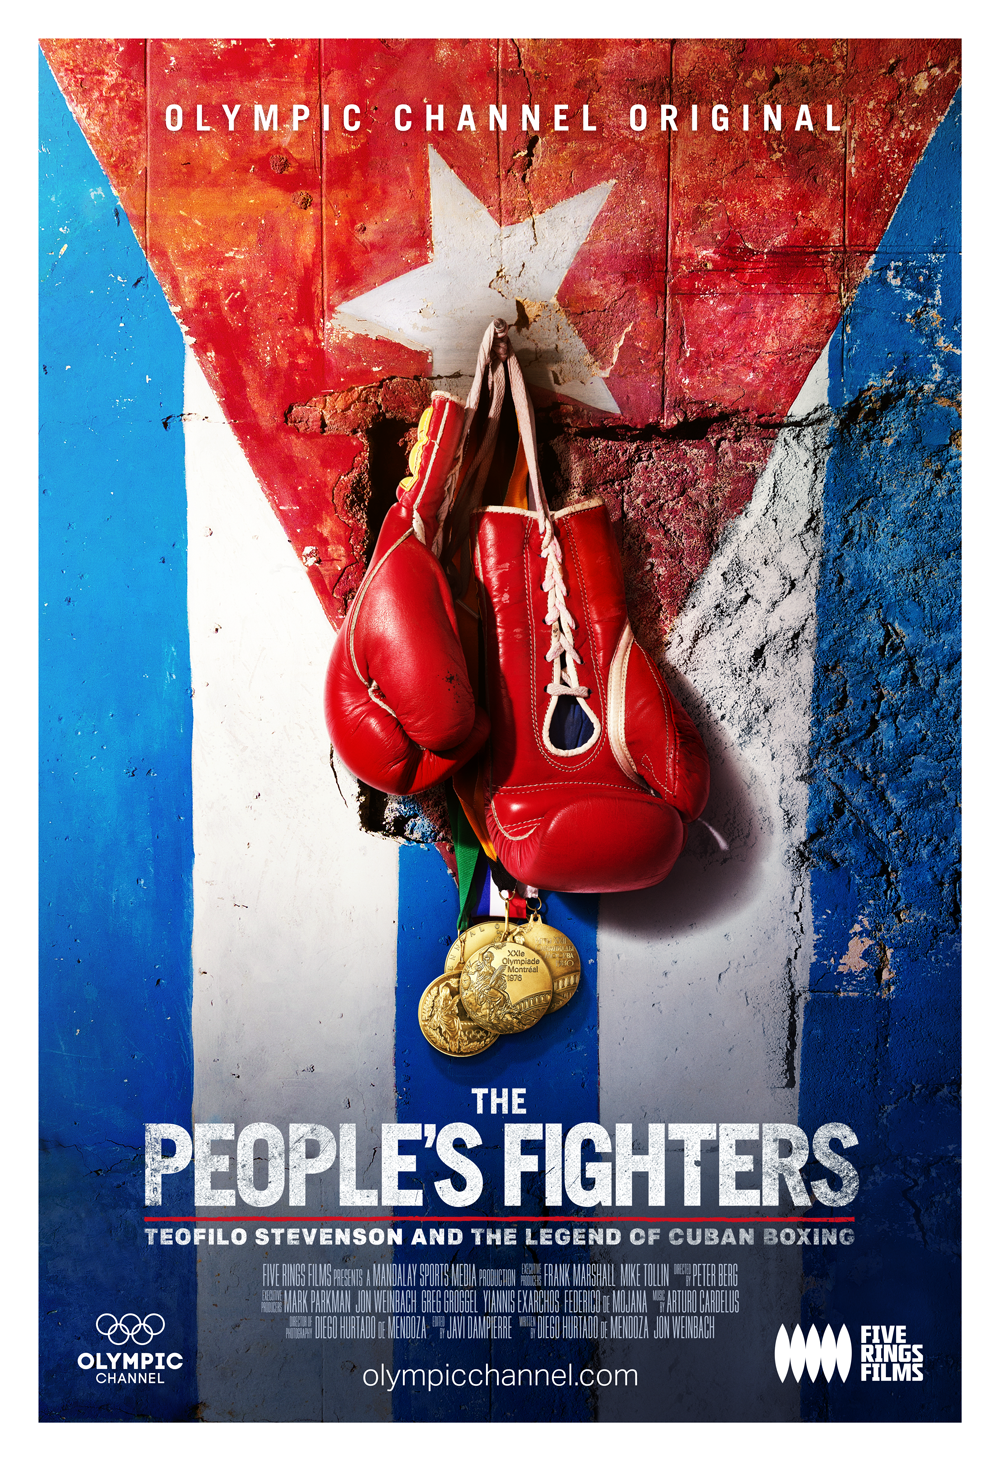 Olympic Chanel lança o filme The People's Fighters